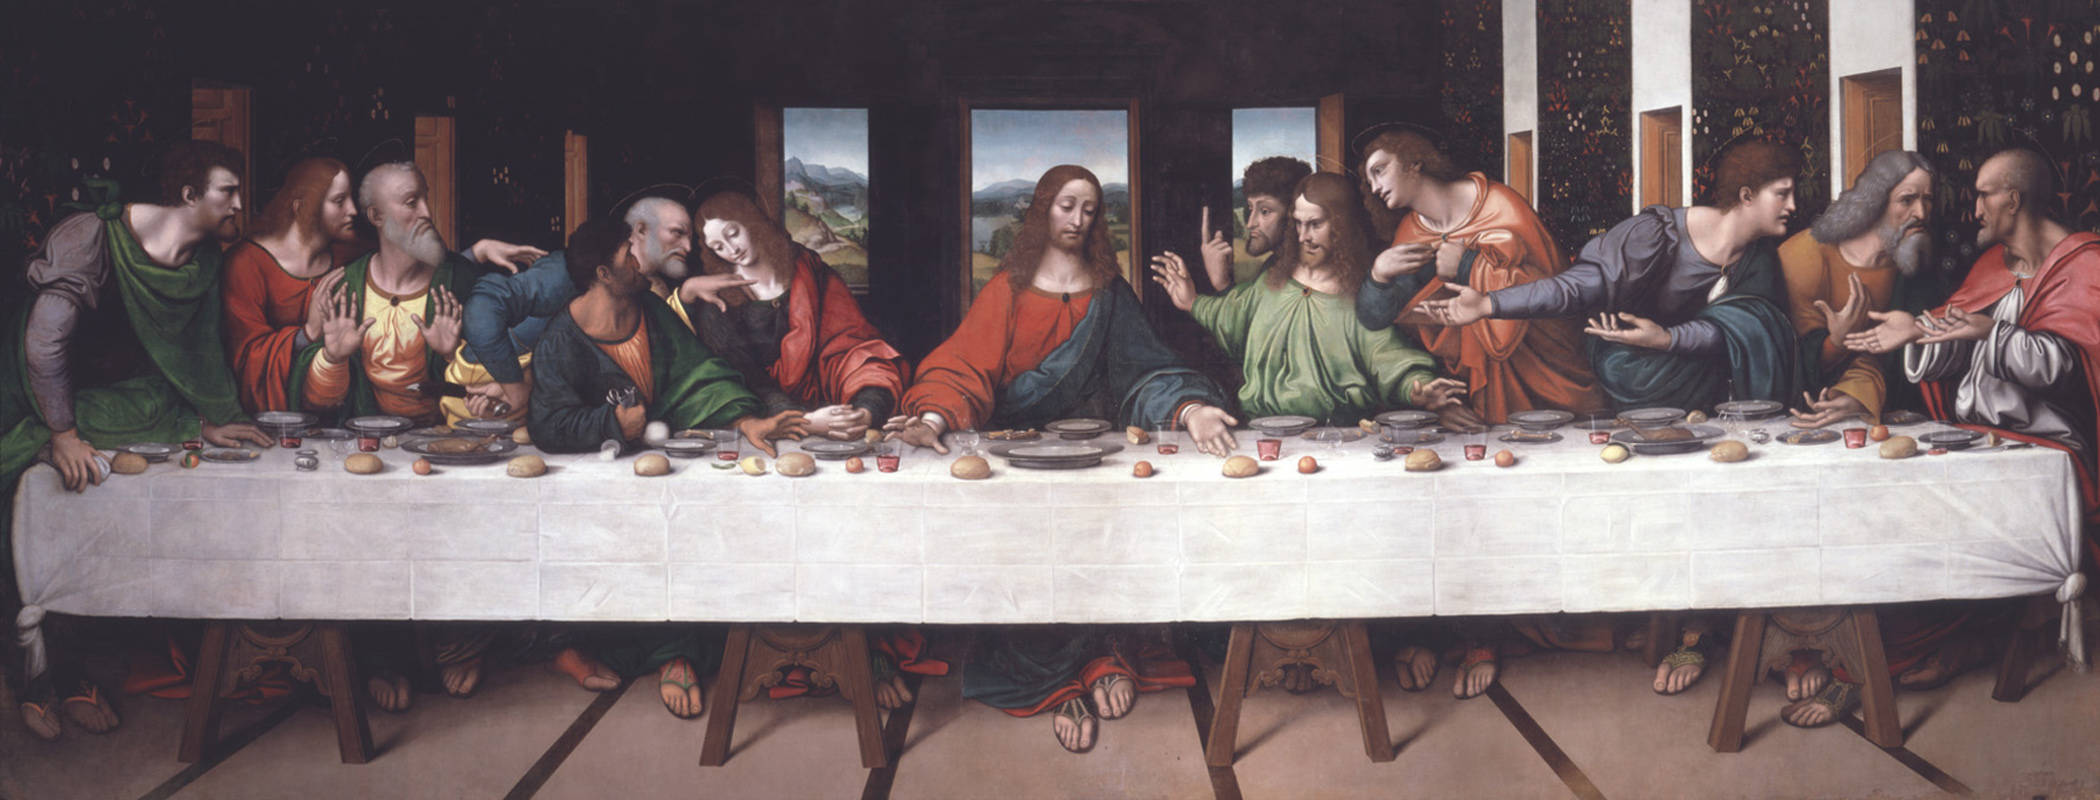 Image result for the last supper original painting secrets